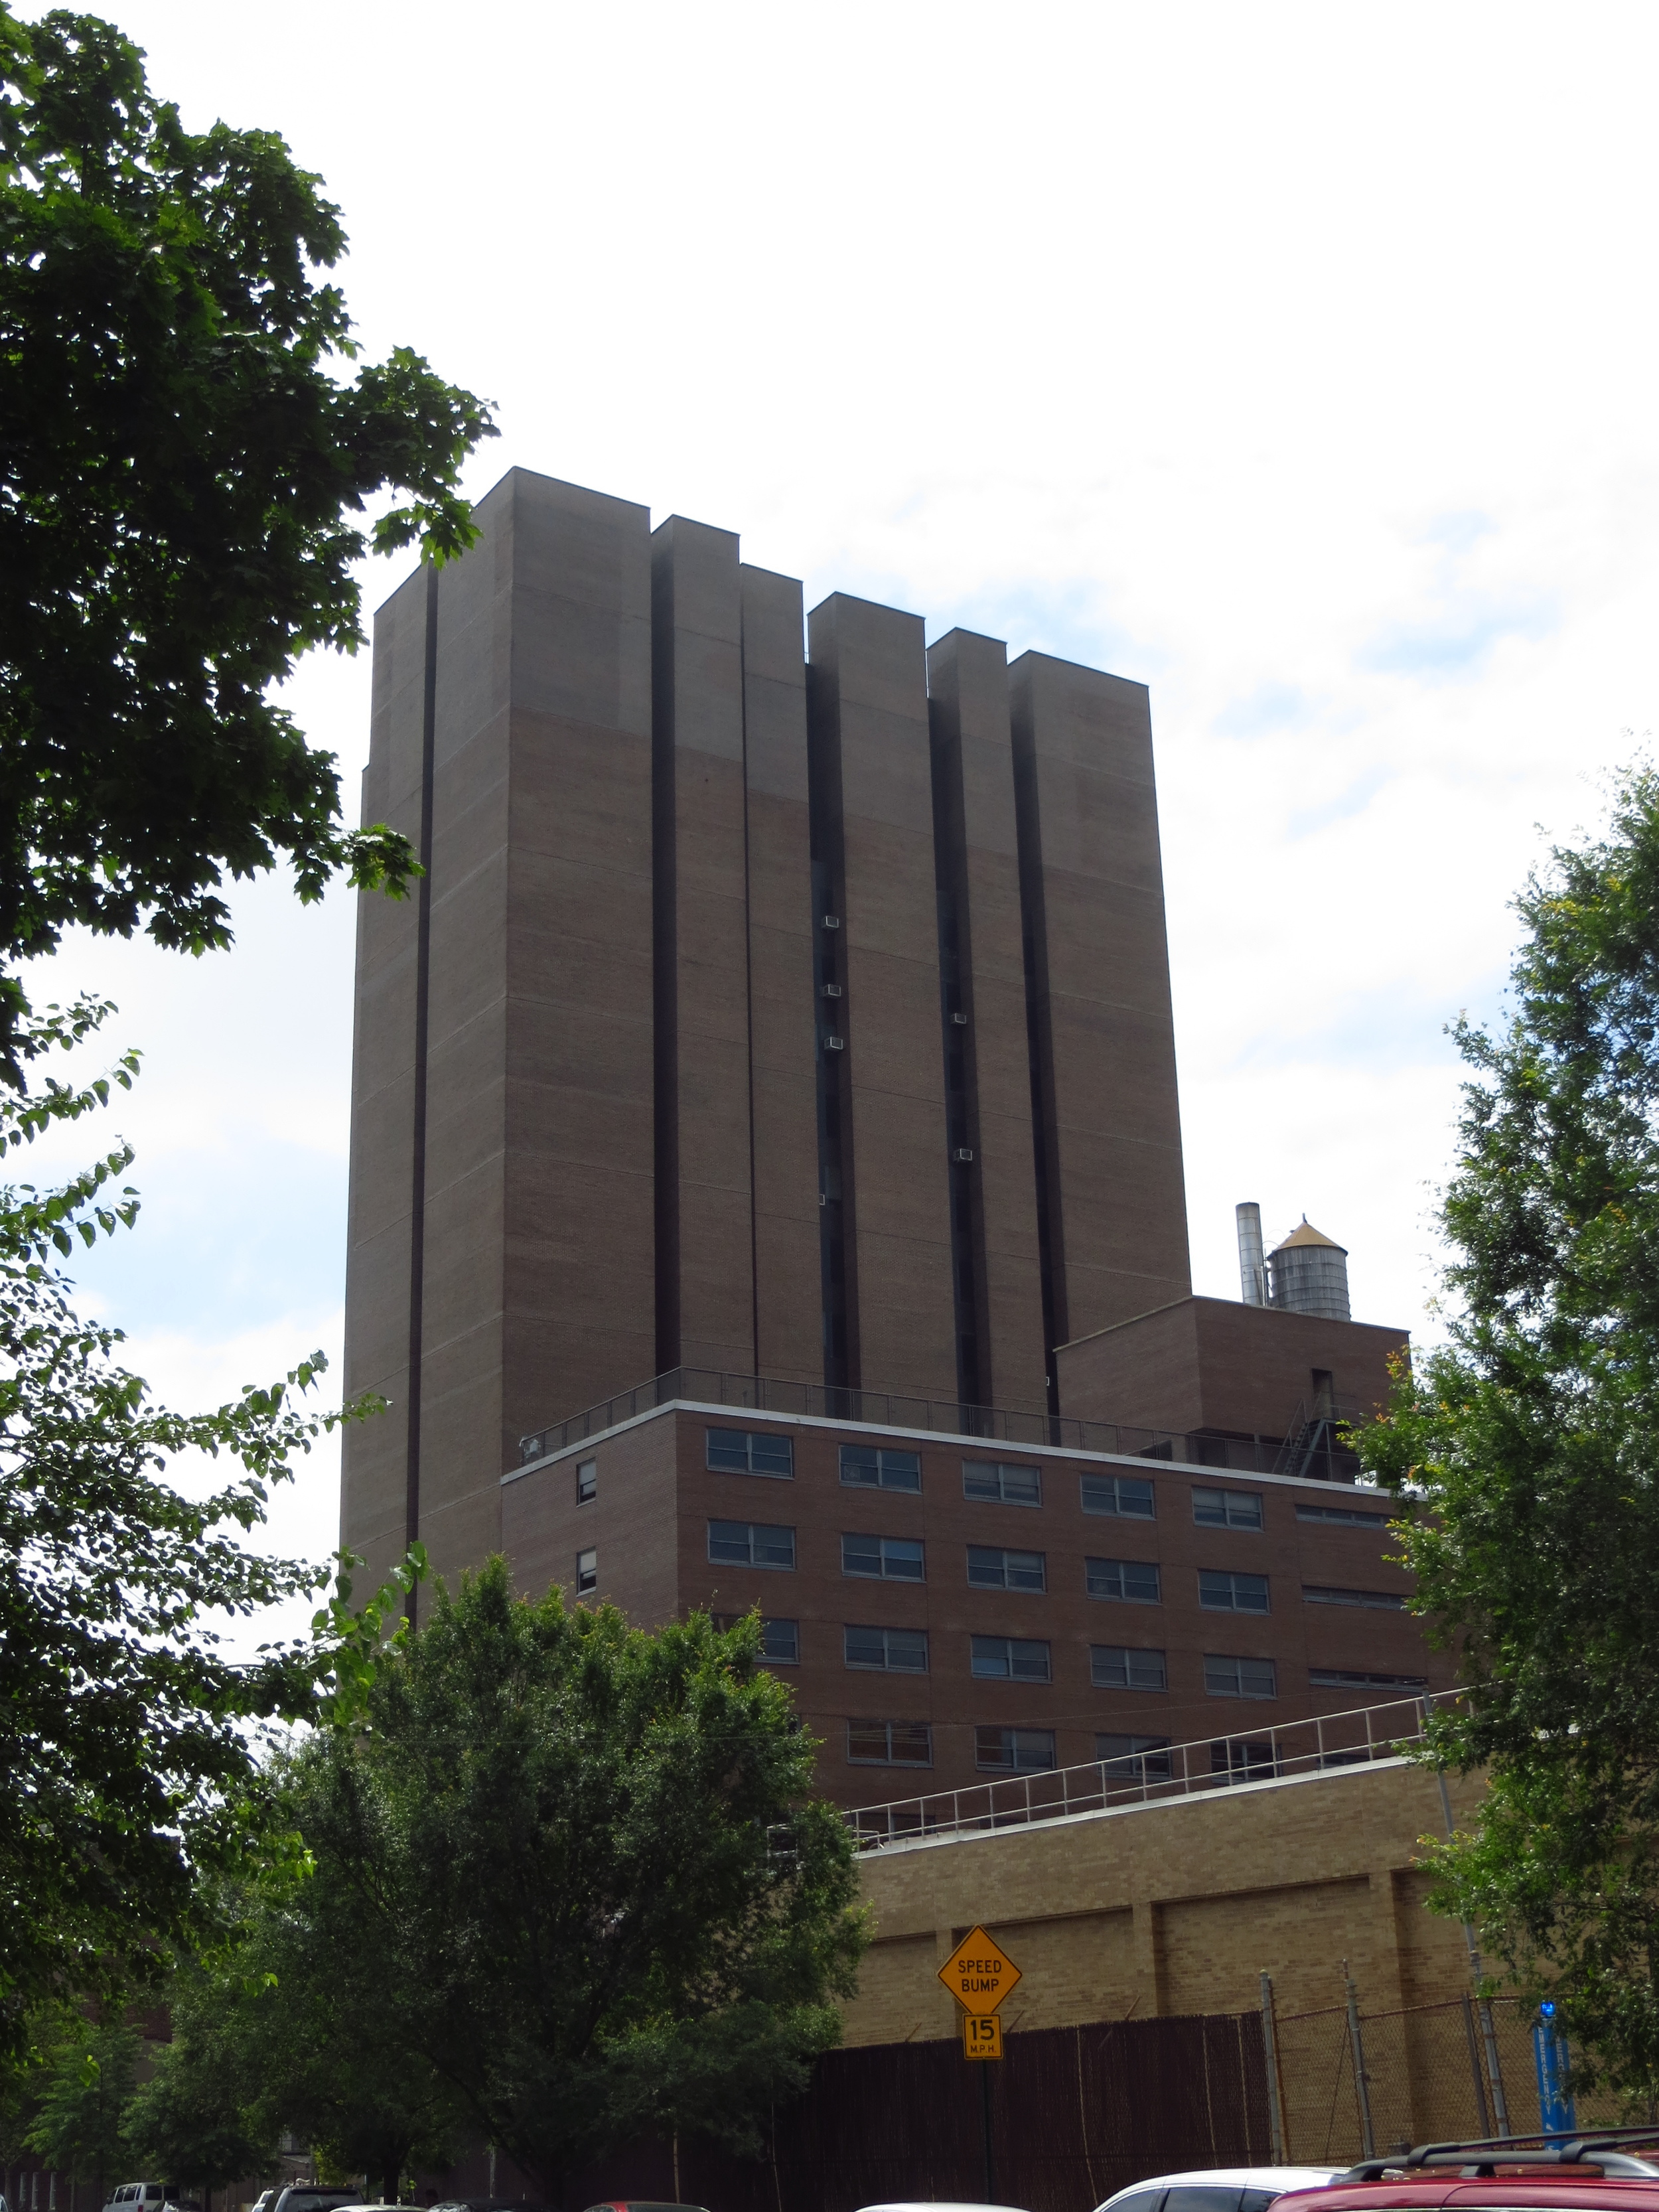 Belfer Hall at Yeshiva University (something tells me it doesn't house their School of Architecture)